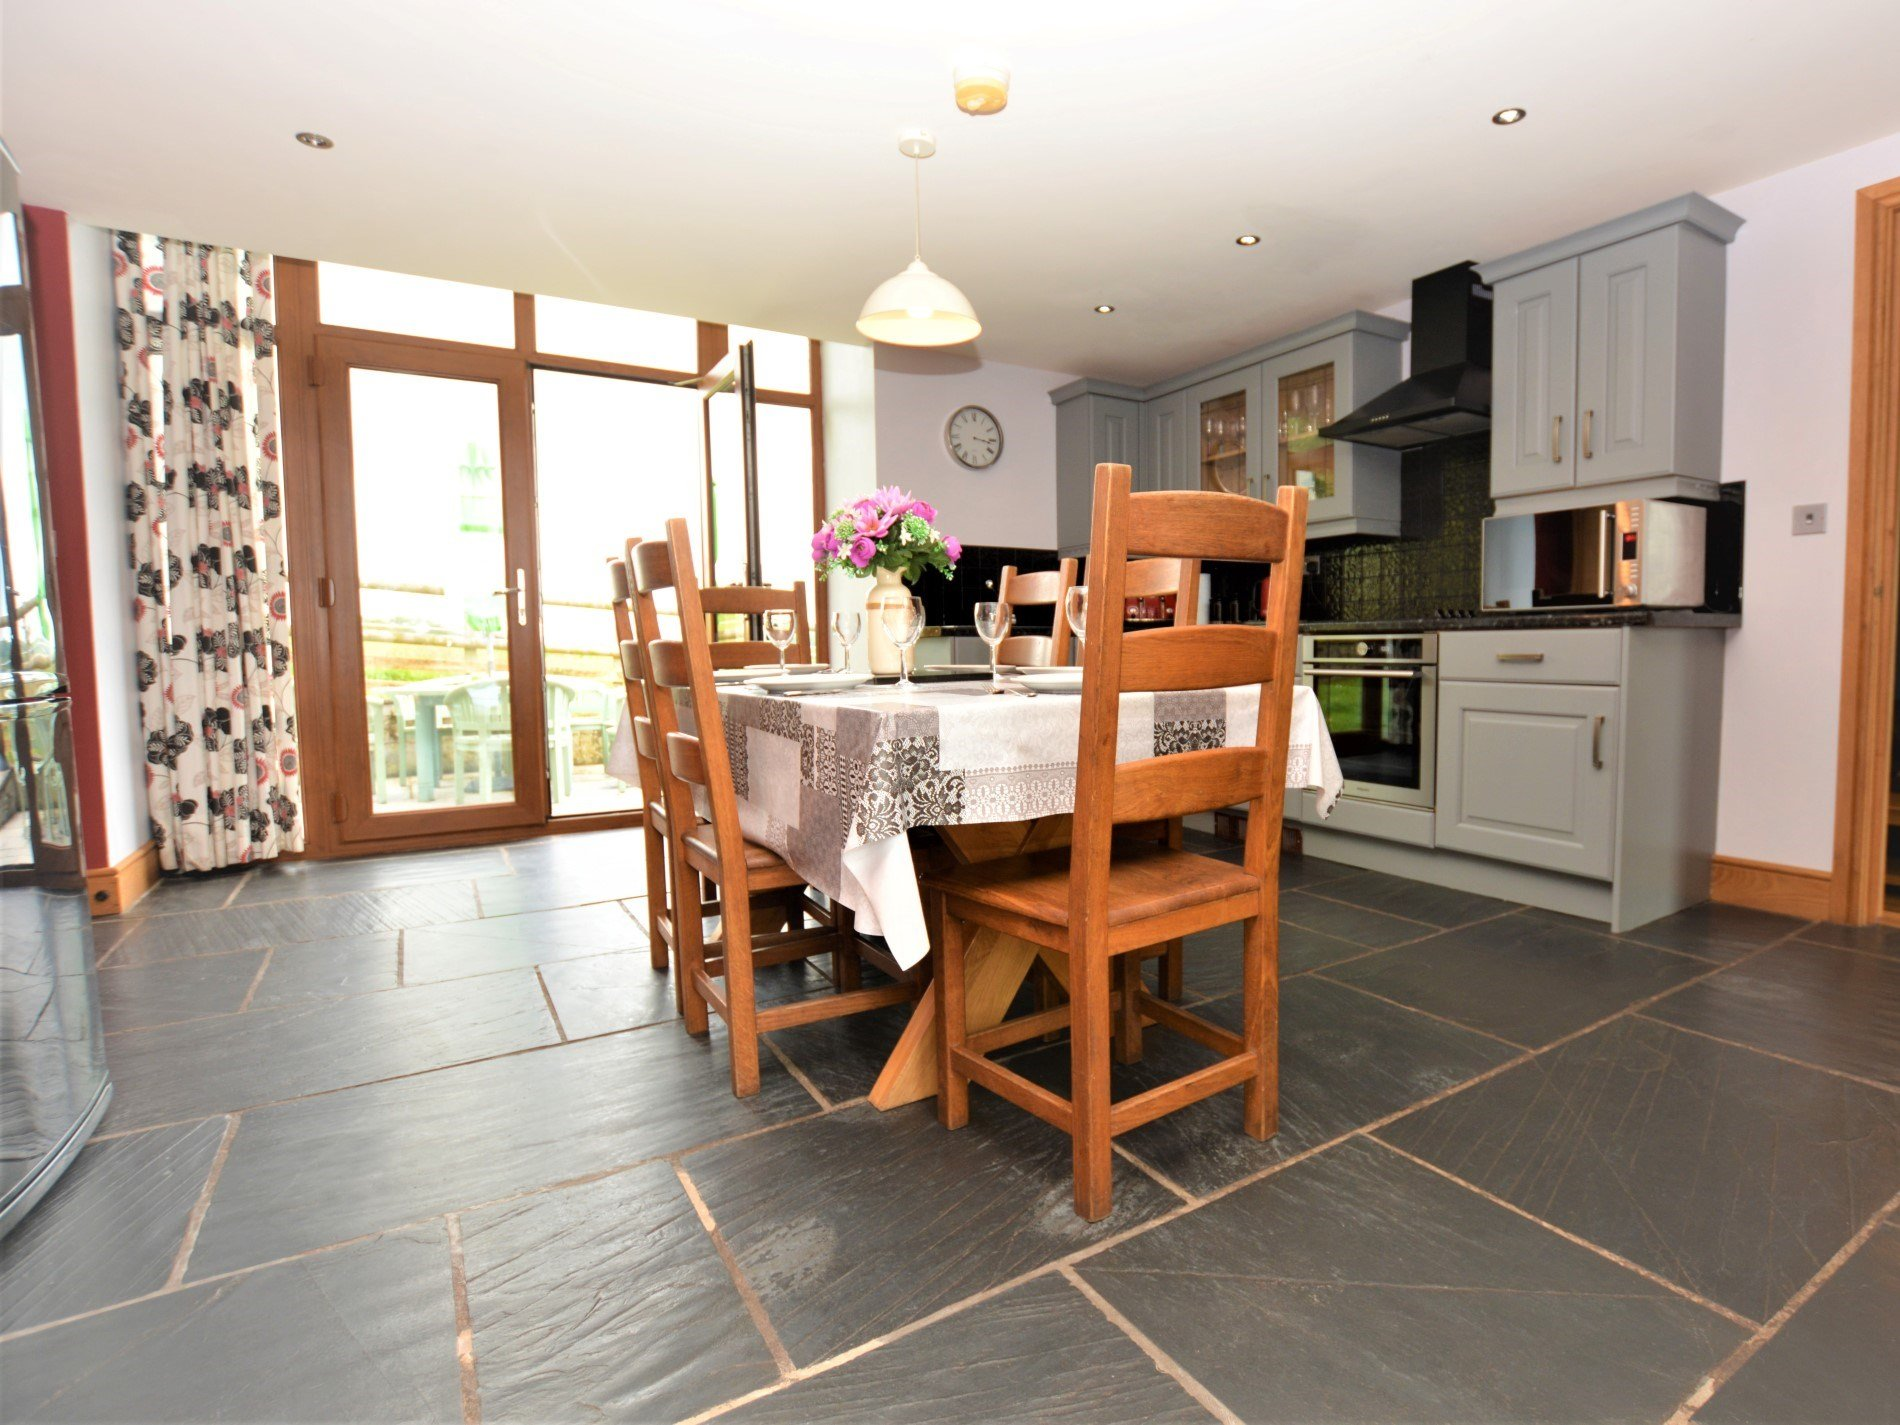 4 Bedroom Barn in West Wales, Pembrokeshire and the South